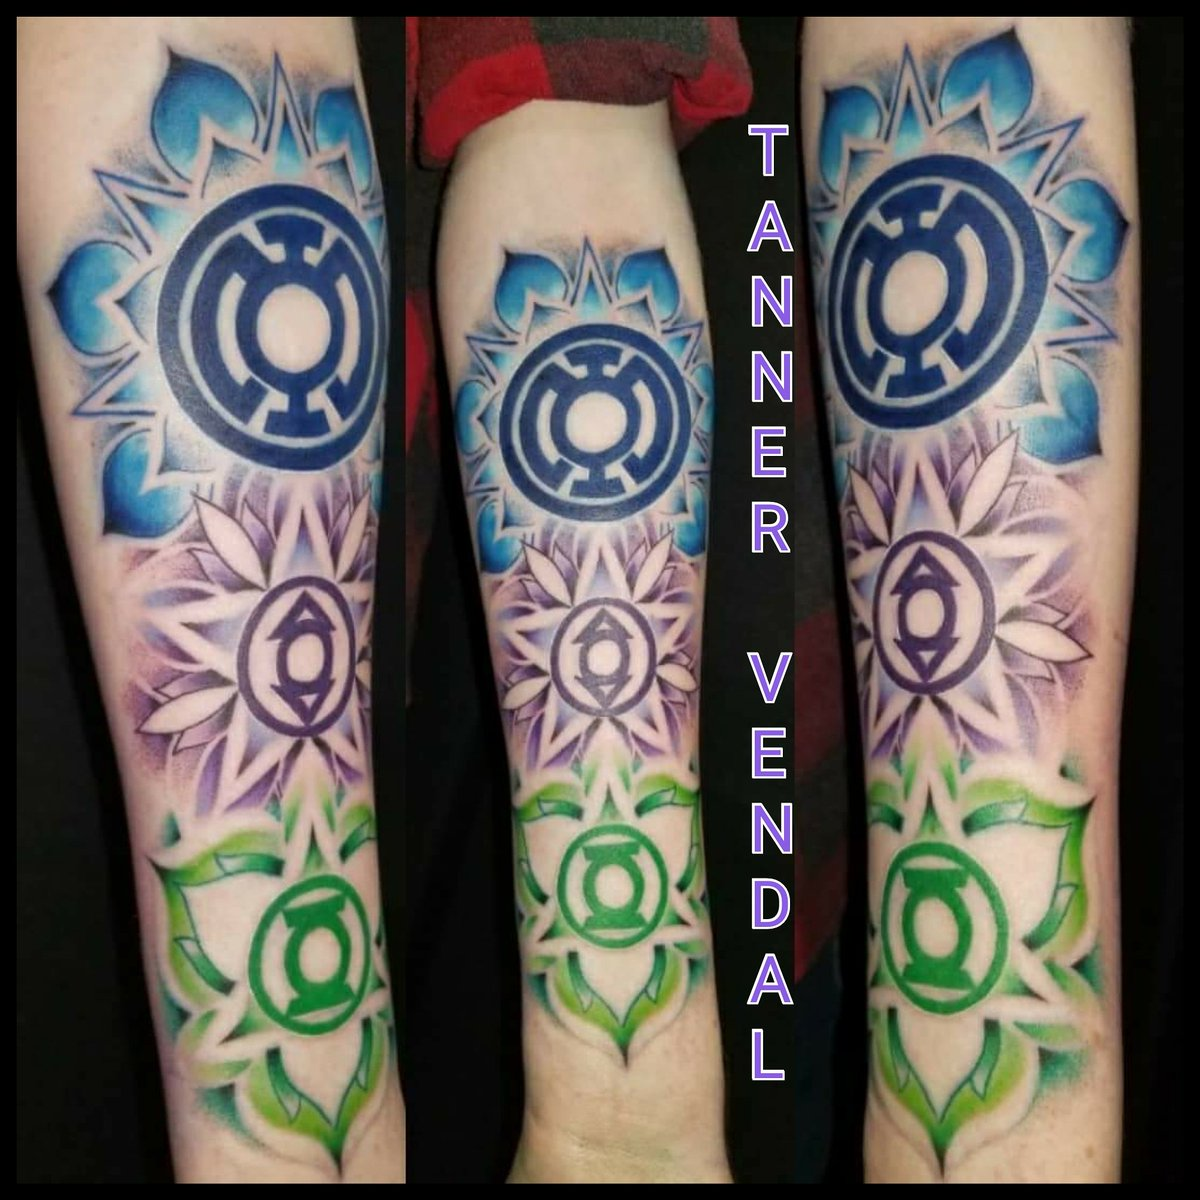 Daddy Jacks Tattoos On Twitter Check Out This Green Lantern